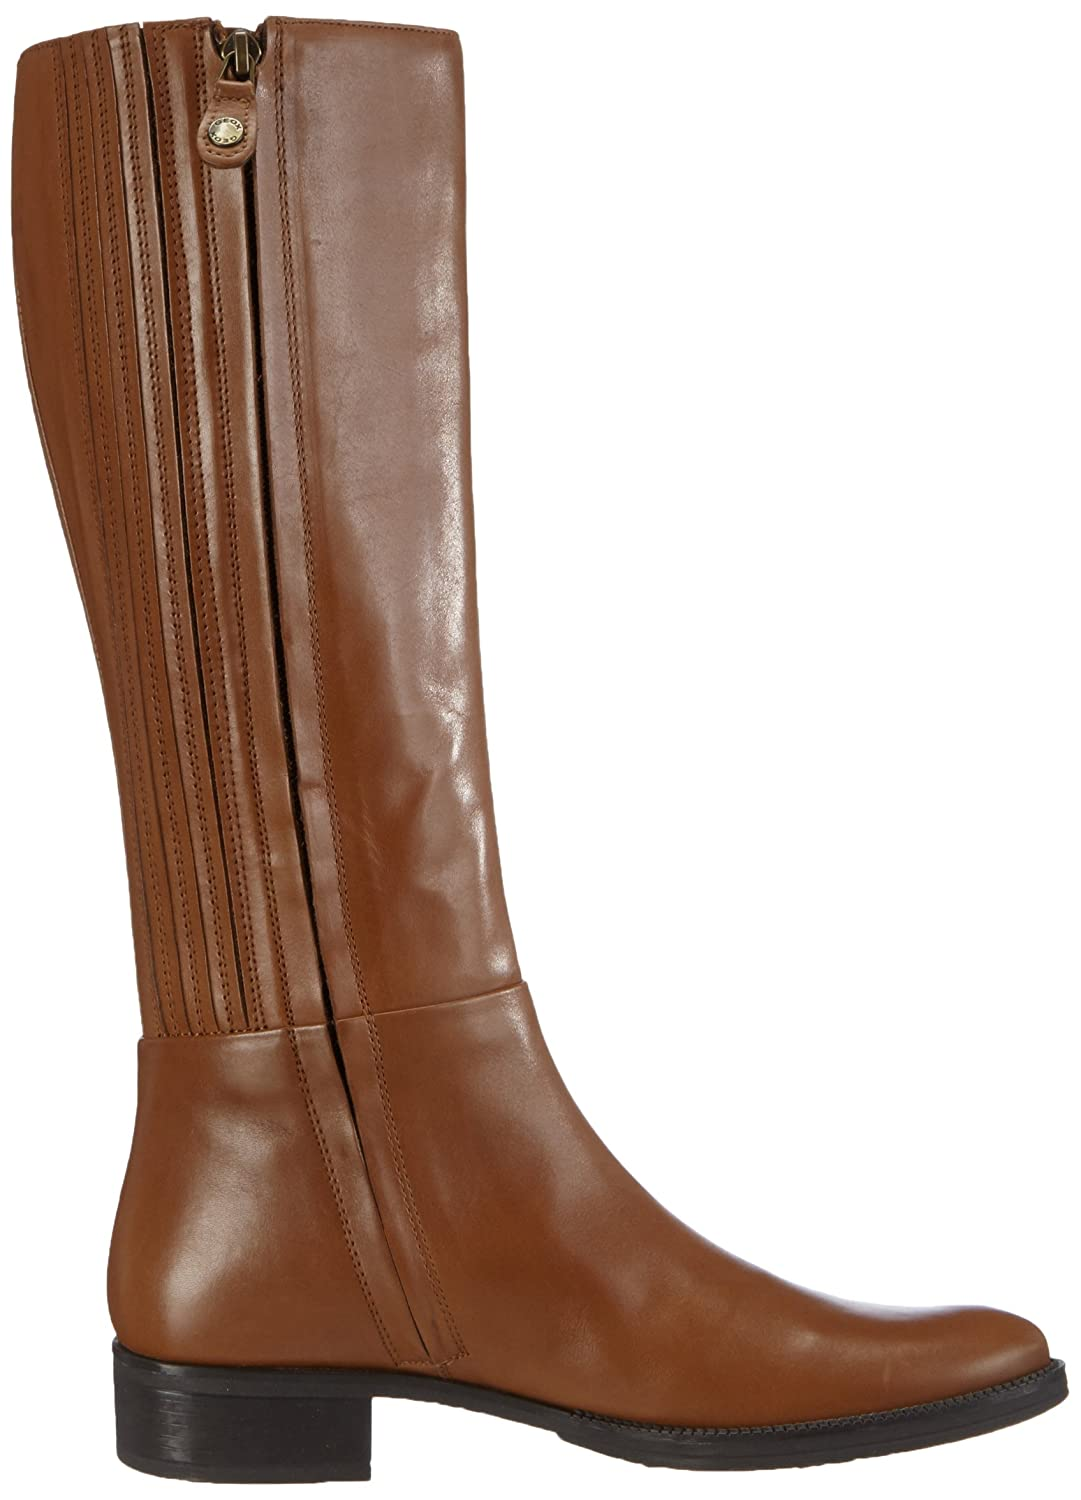 Donna Mendi Stivali P, Womens Ankle Riding Boots - Brown (Brownc0013), 2.5 UK (35 EU) Geox